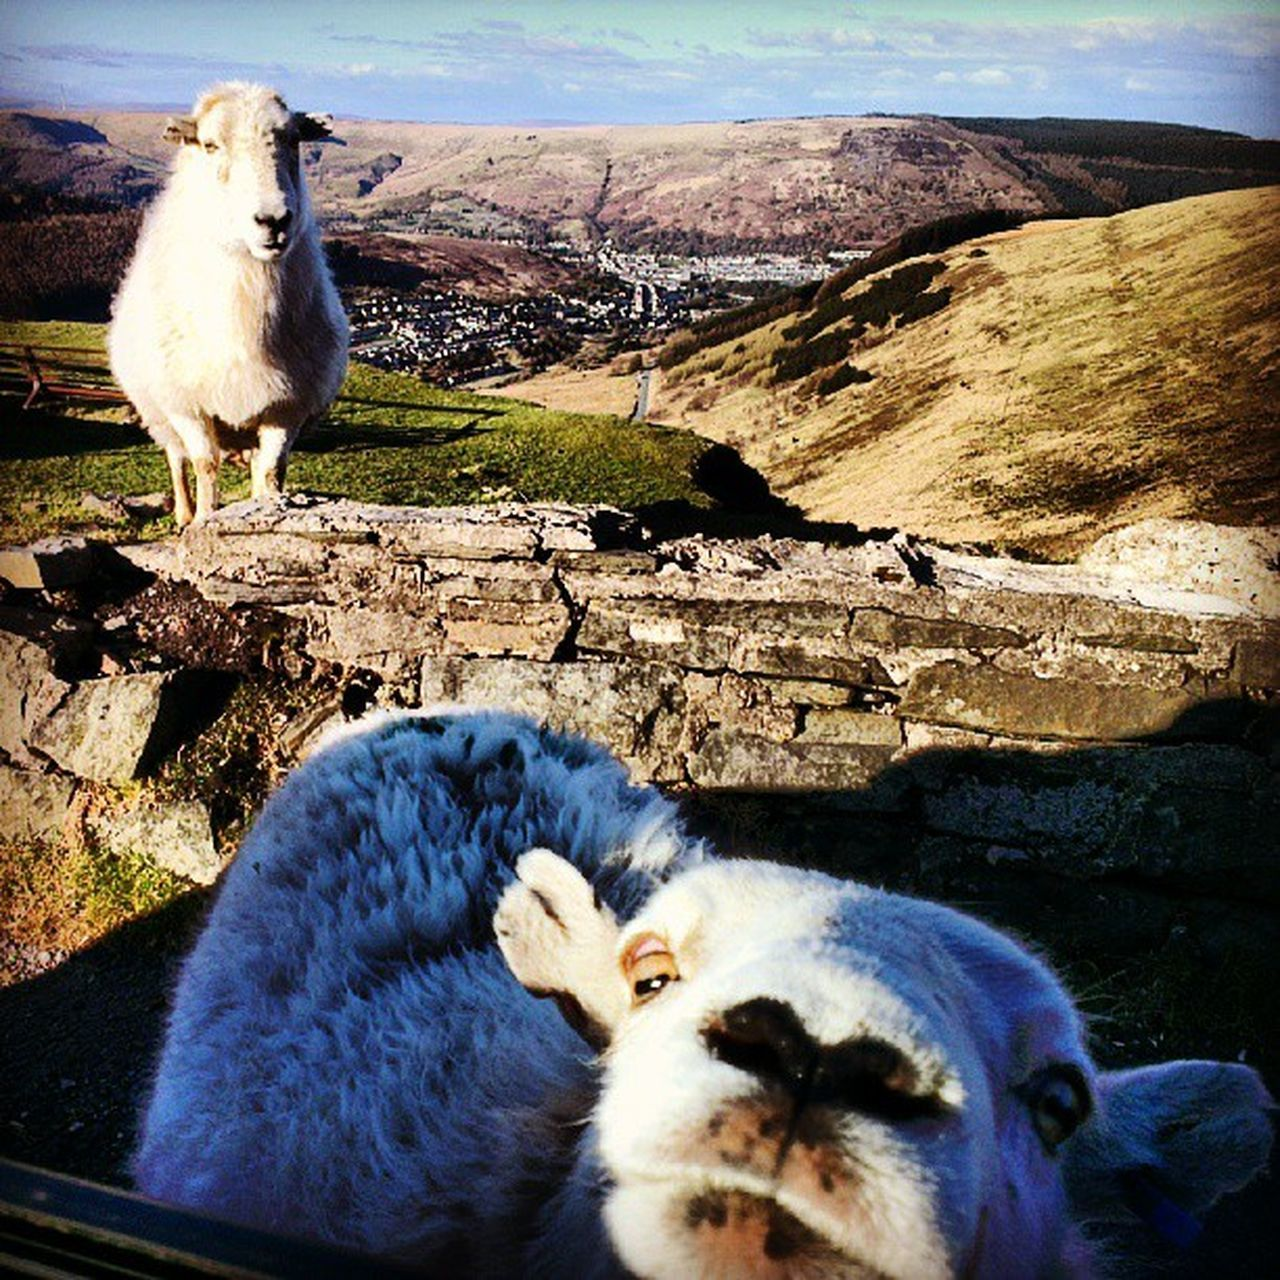 Don't run out of ice cream or these cheeky Bwlch Sheep will kick your car door in.